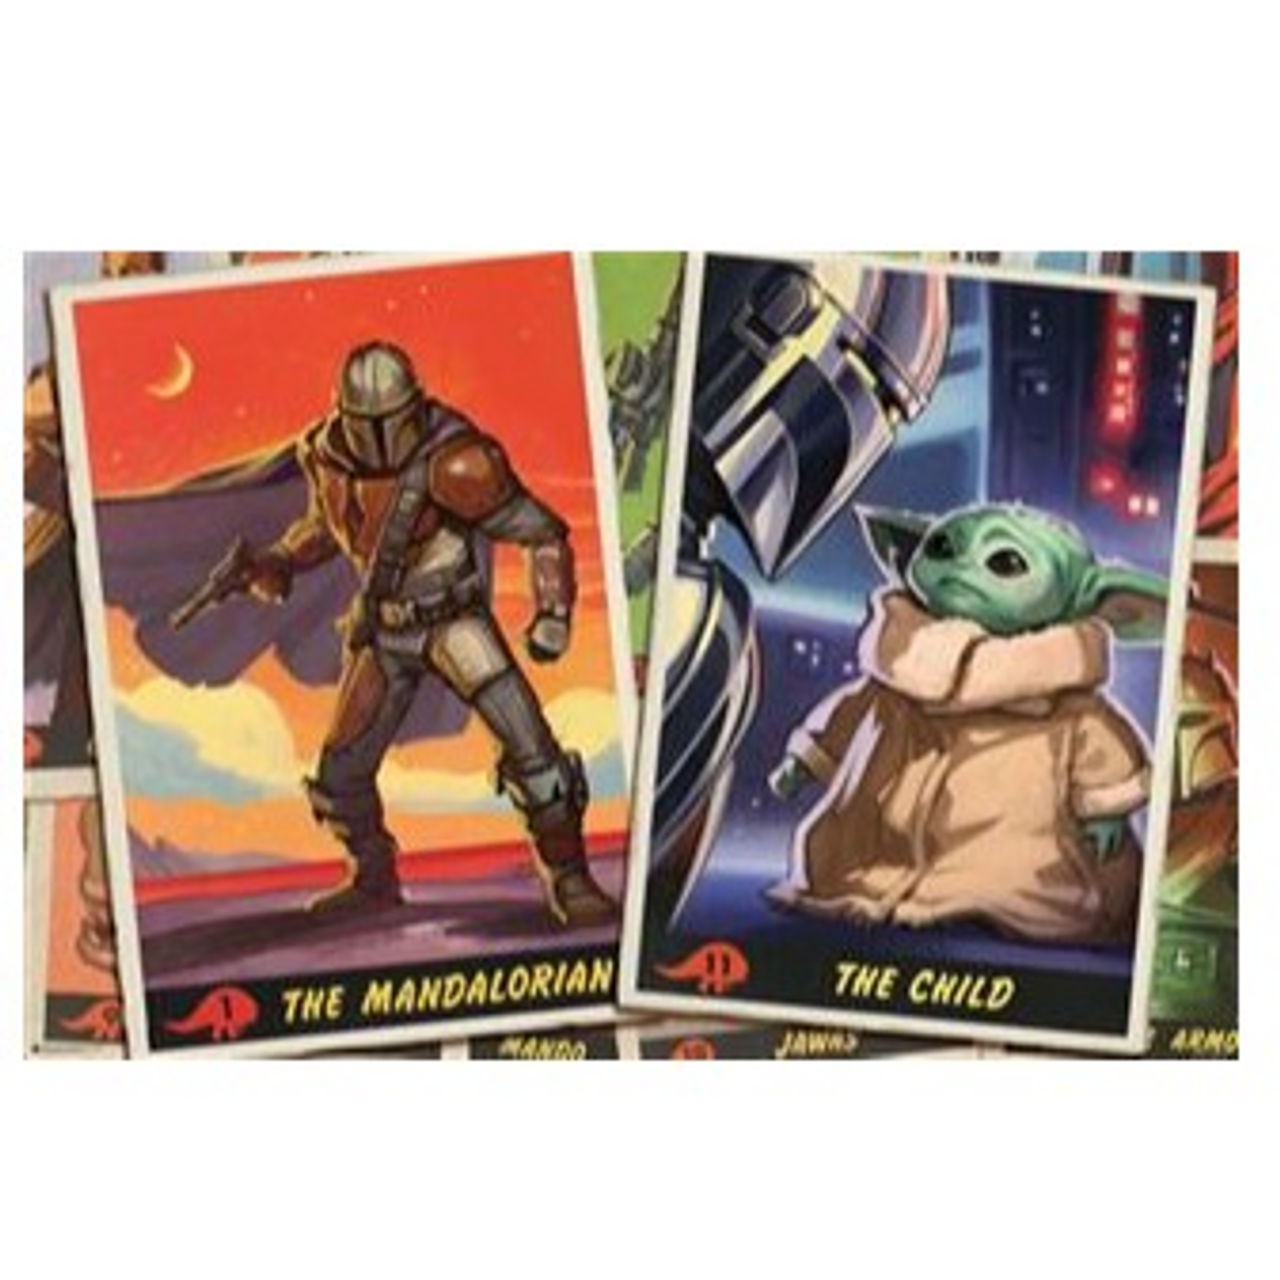 Poster - Star Wars: The Mandalorian - Trading Cards